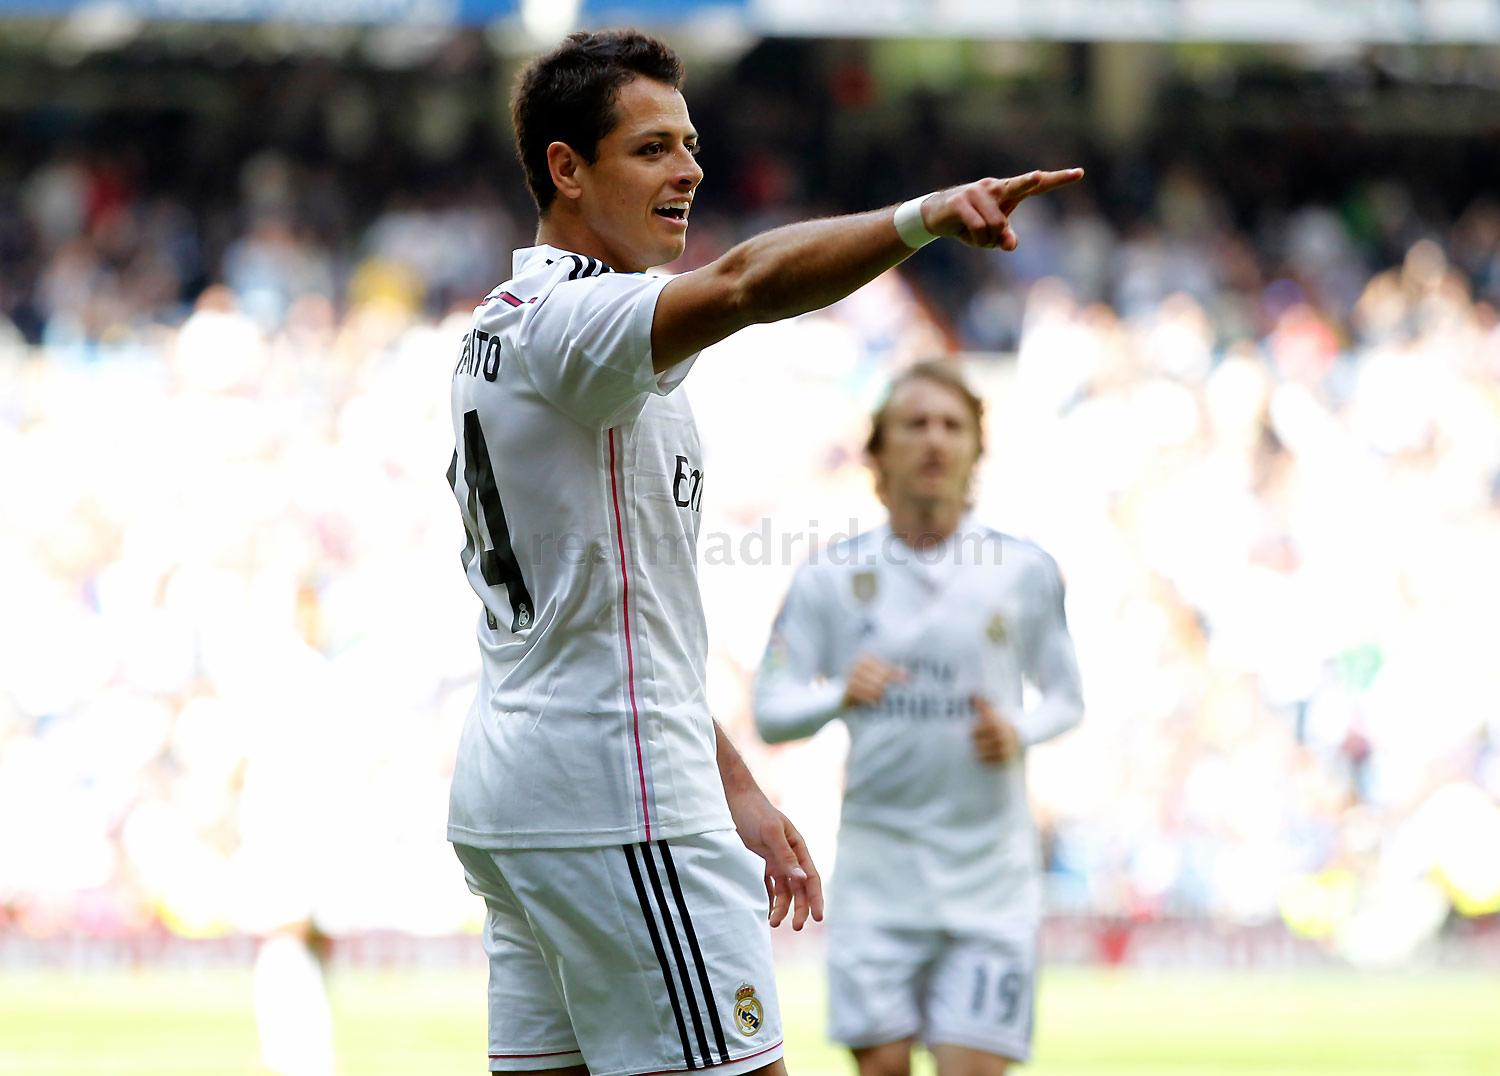 Real Madrid - Real Madrid - Eibar - 11-04-2015